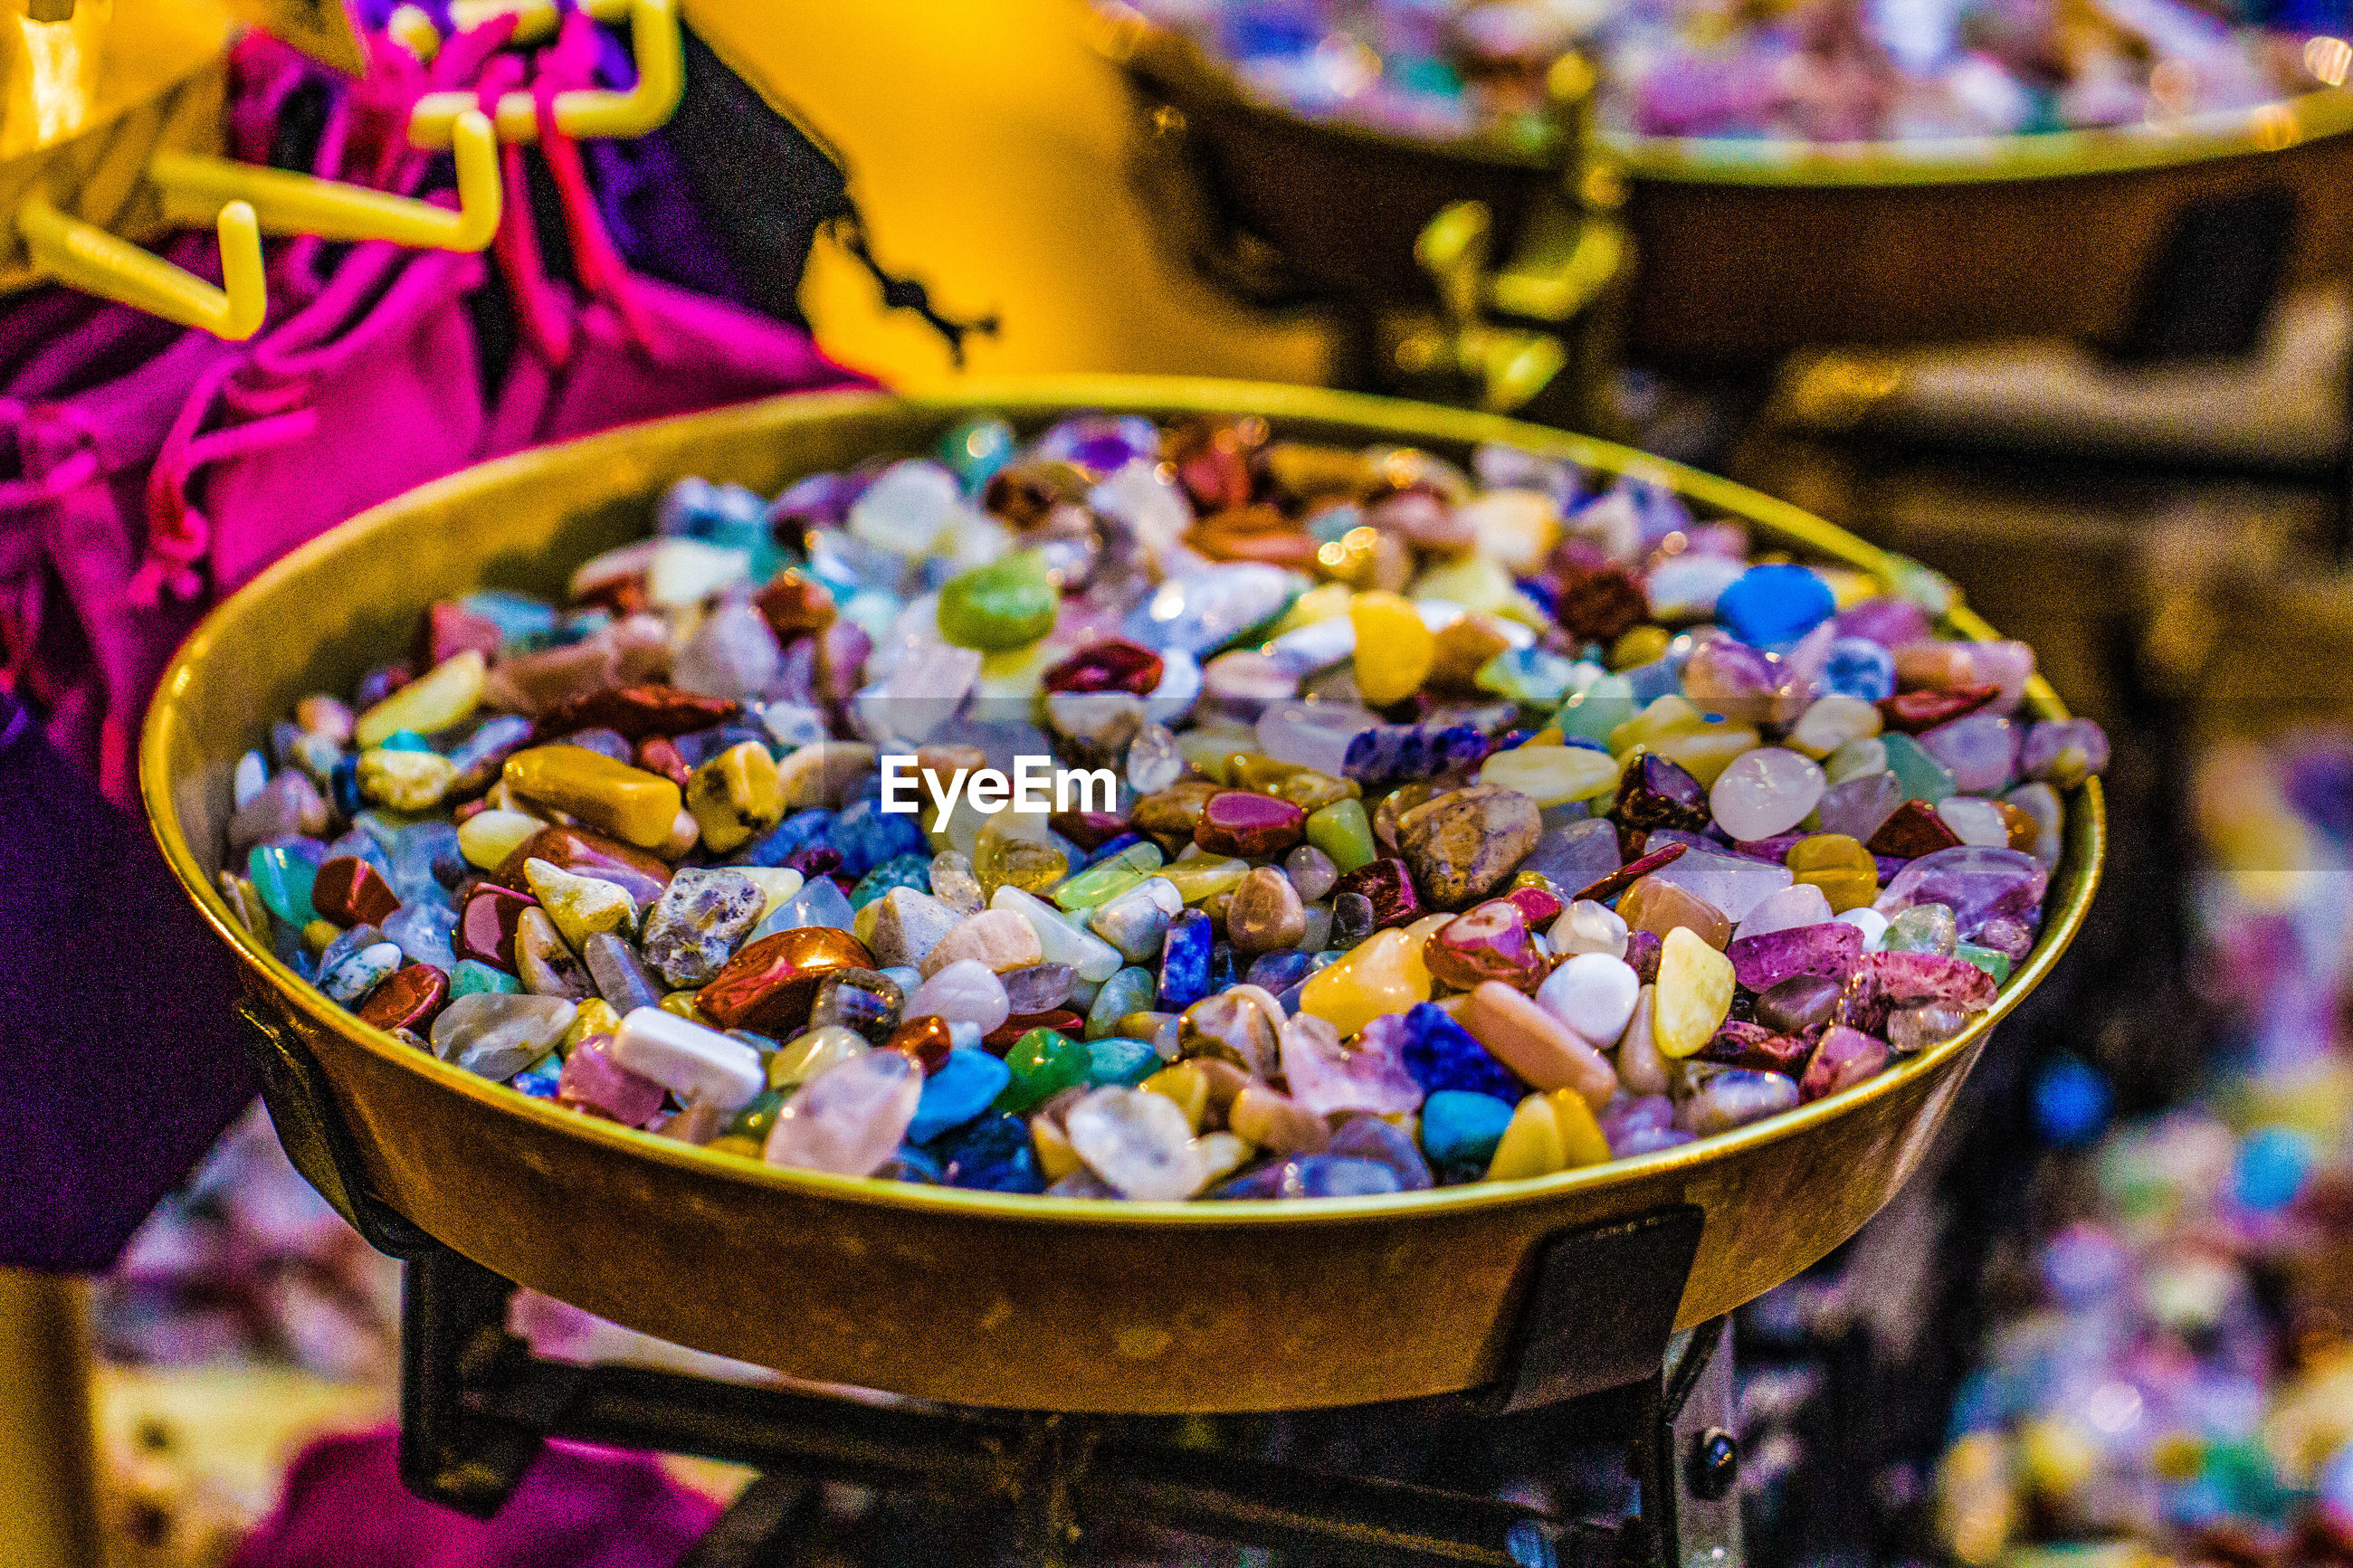 CLOSE-UP OF COLORFUL CANDIES IN BOWL